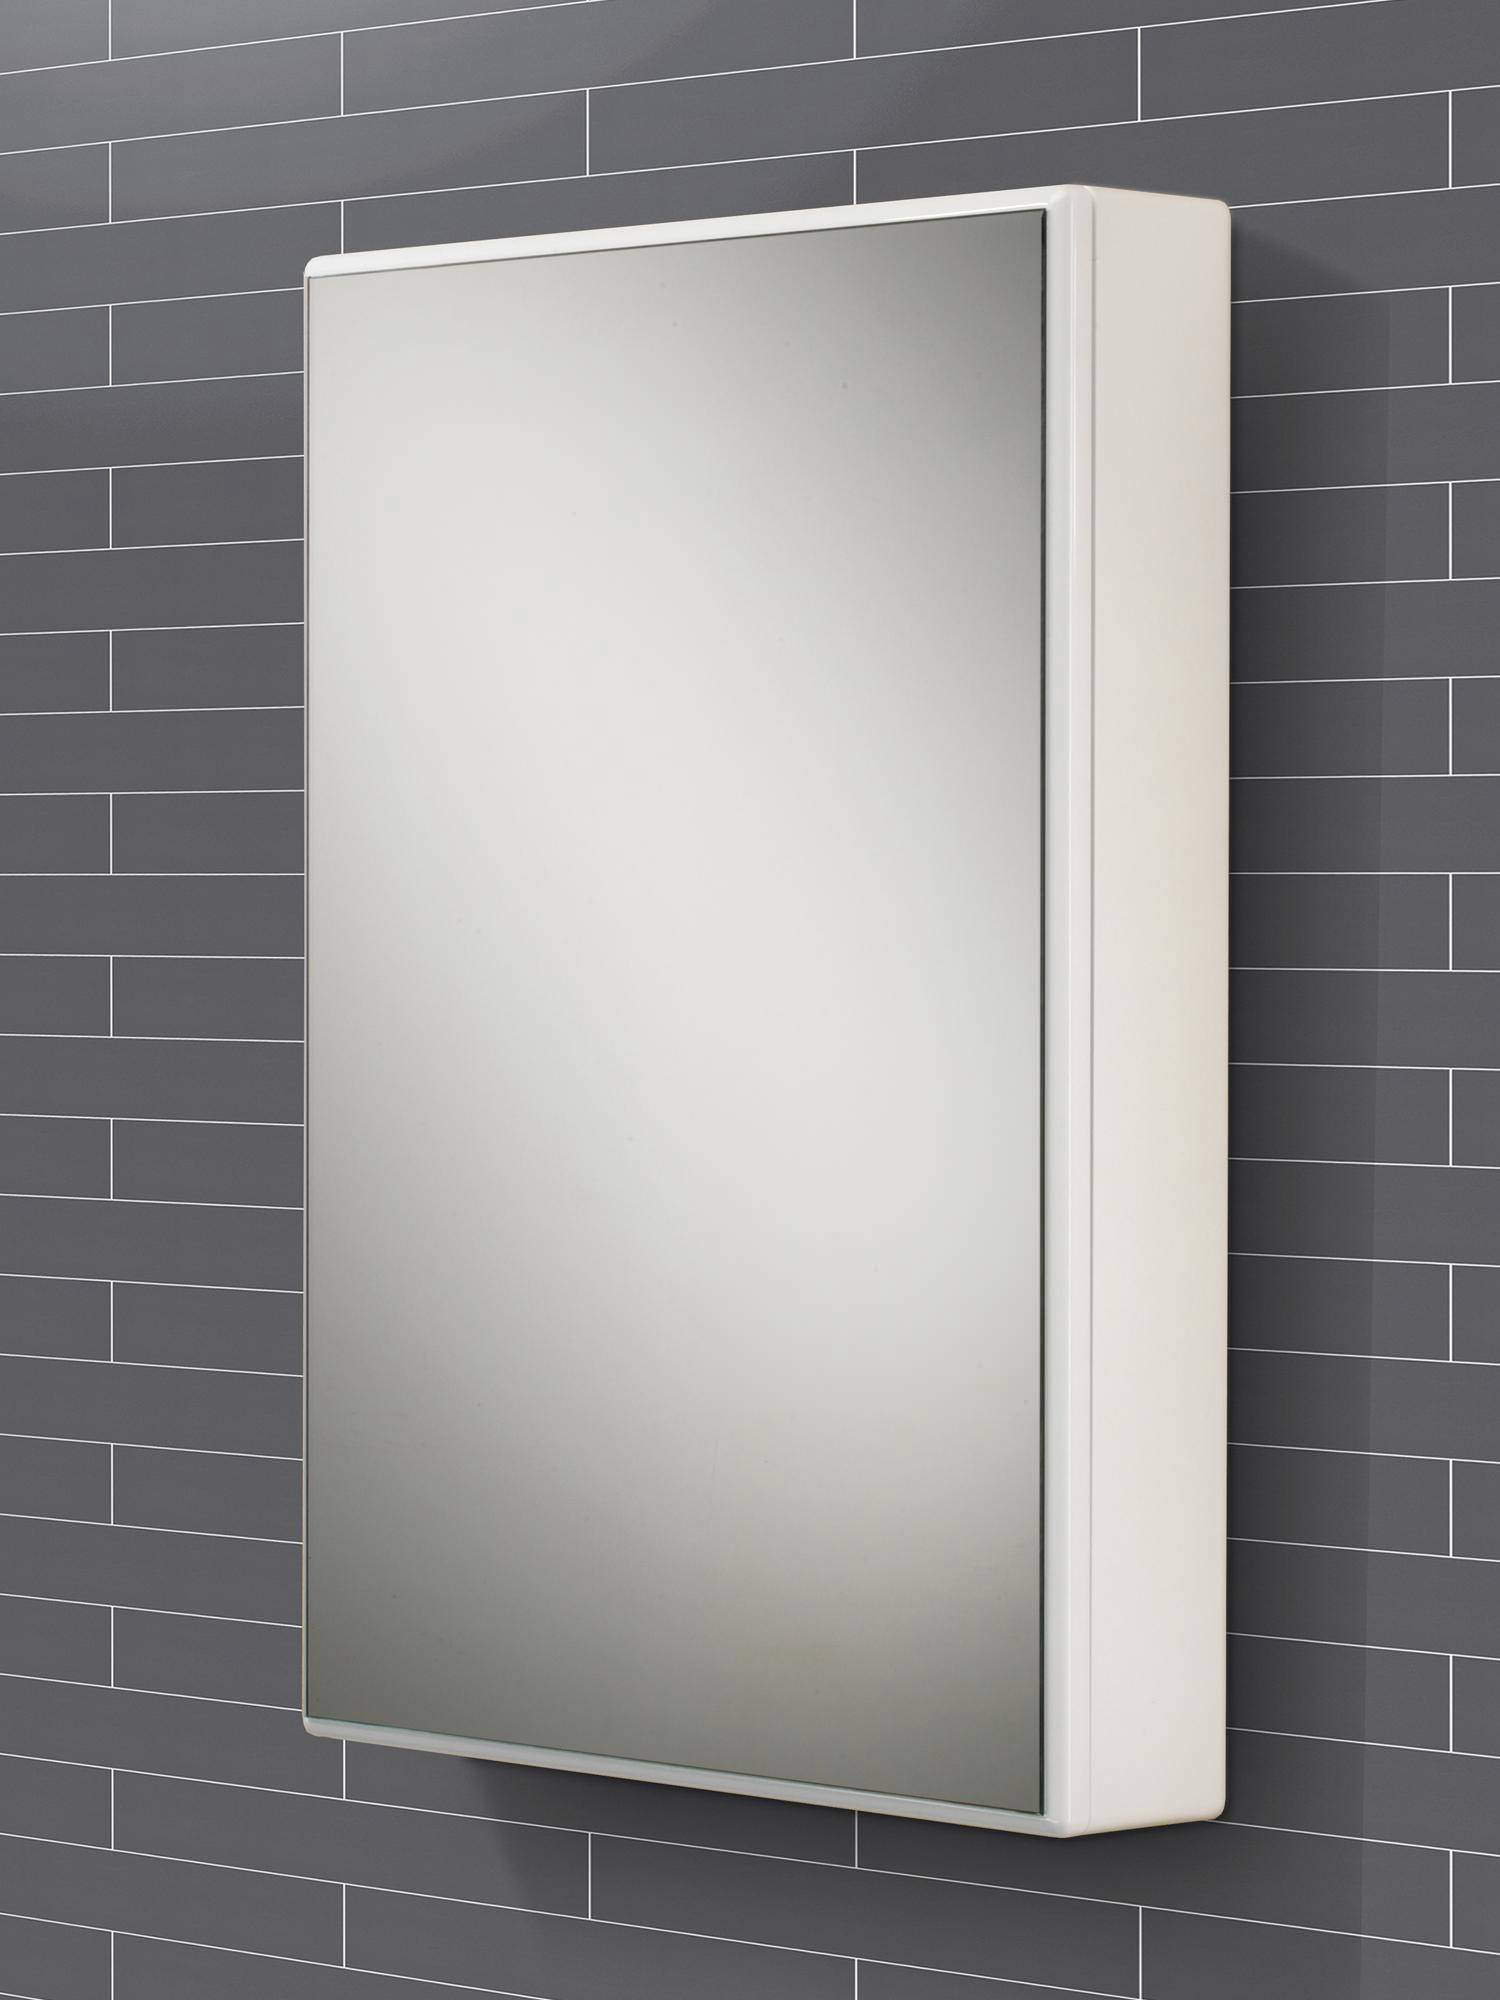 Double Swivel Mirror Door Bathroom Cabinet1500 X 2000